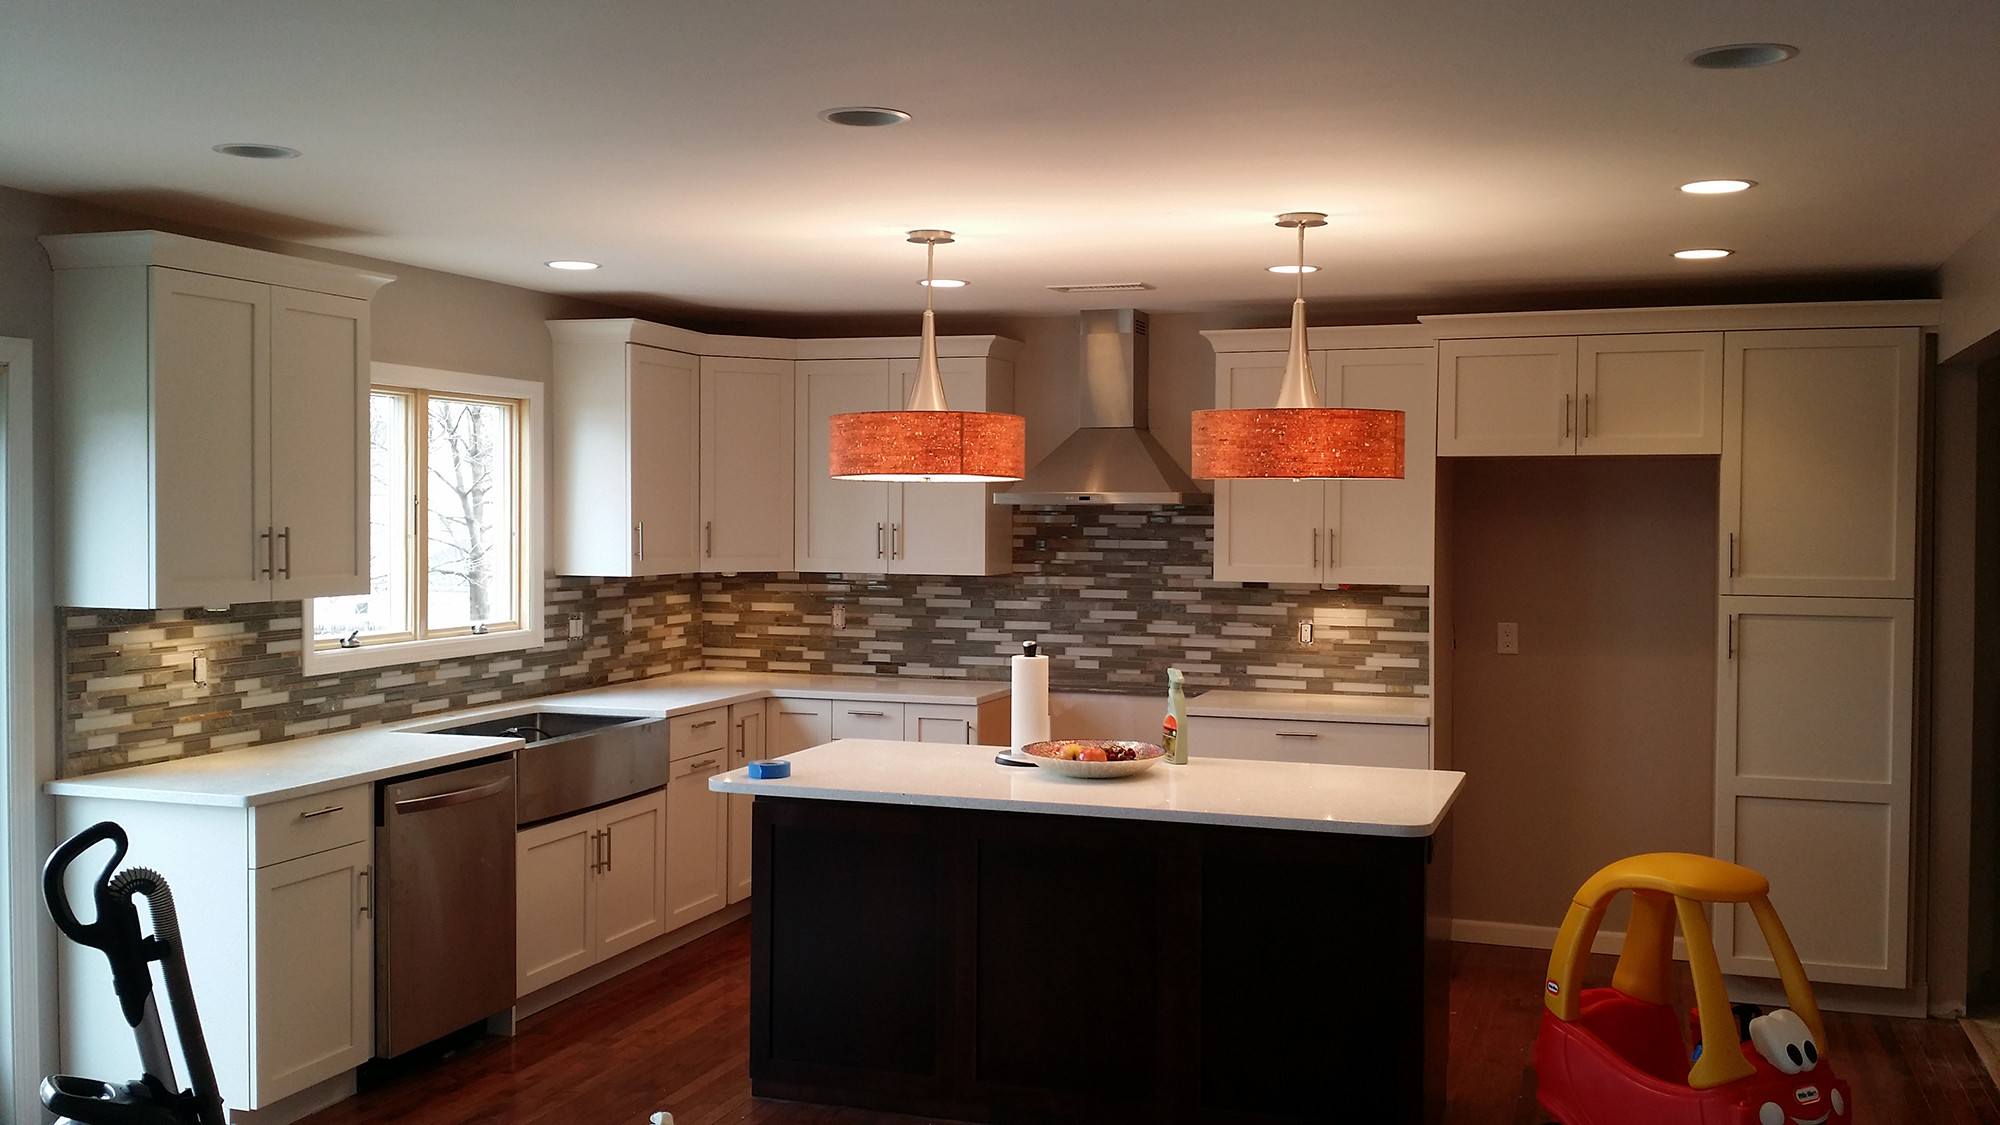 Flatfolio projects archive home renovation nj for Complete kitchen remodel price